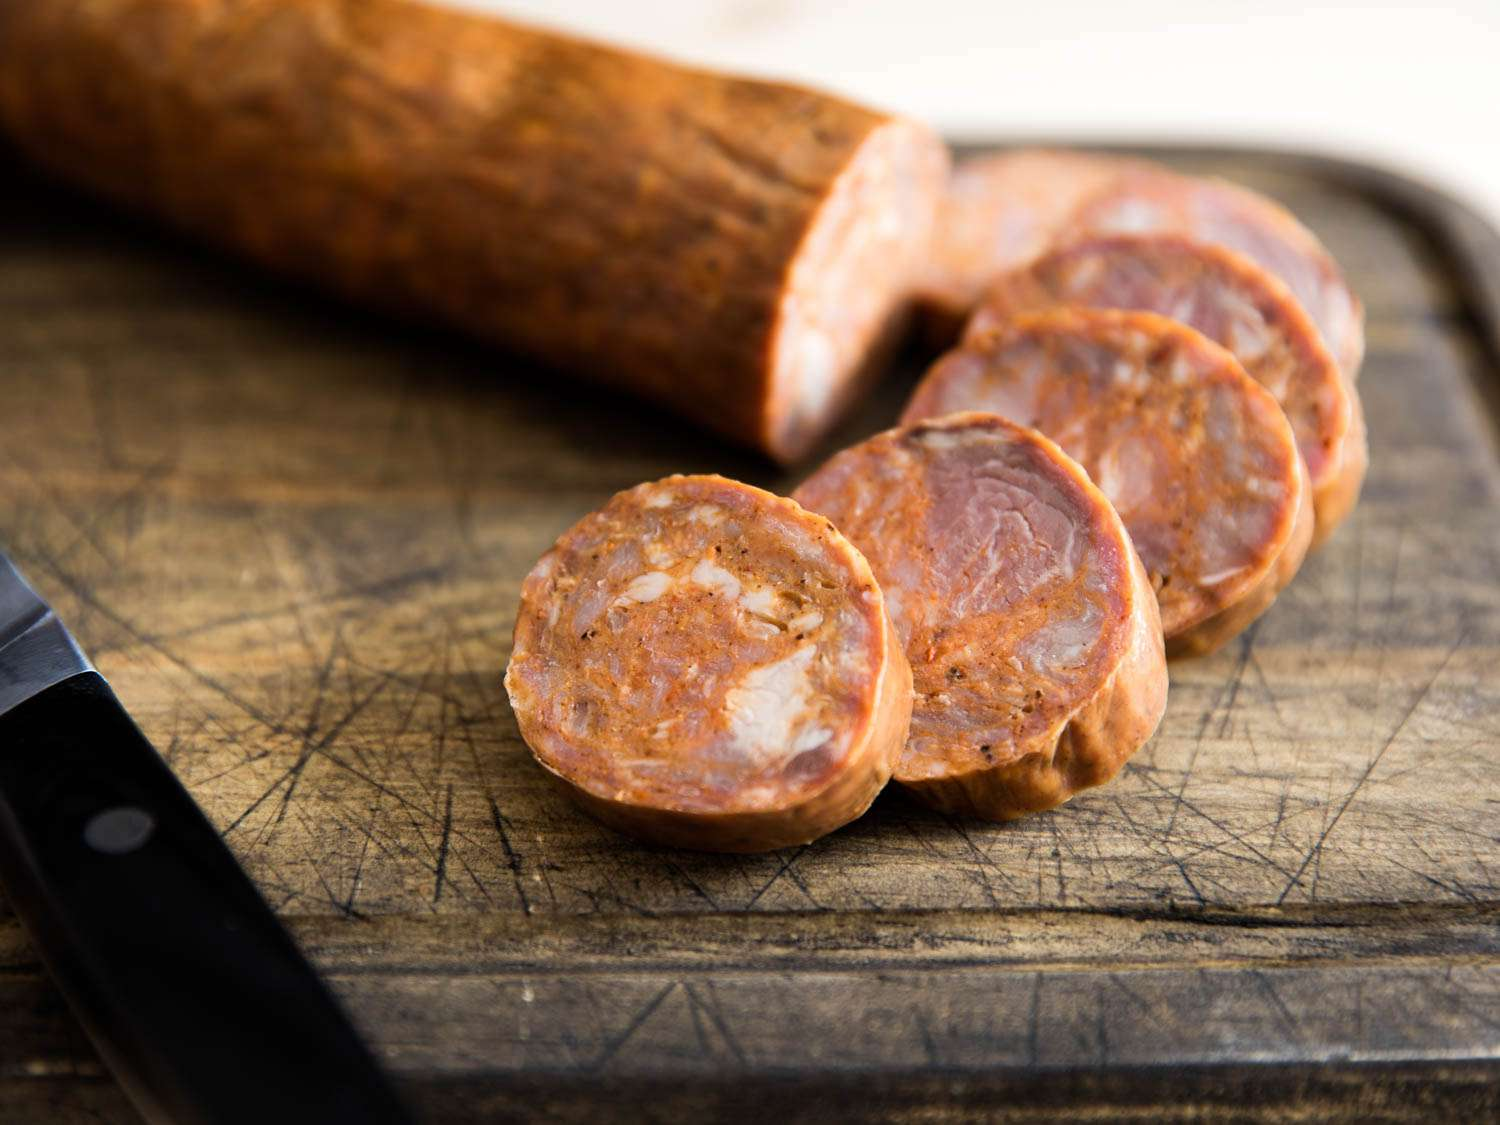 20160328-lousiana-products-andouille-sausage-vicky-wasik-7.jpg